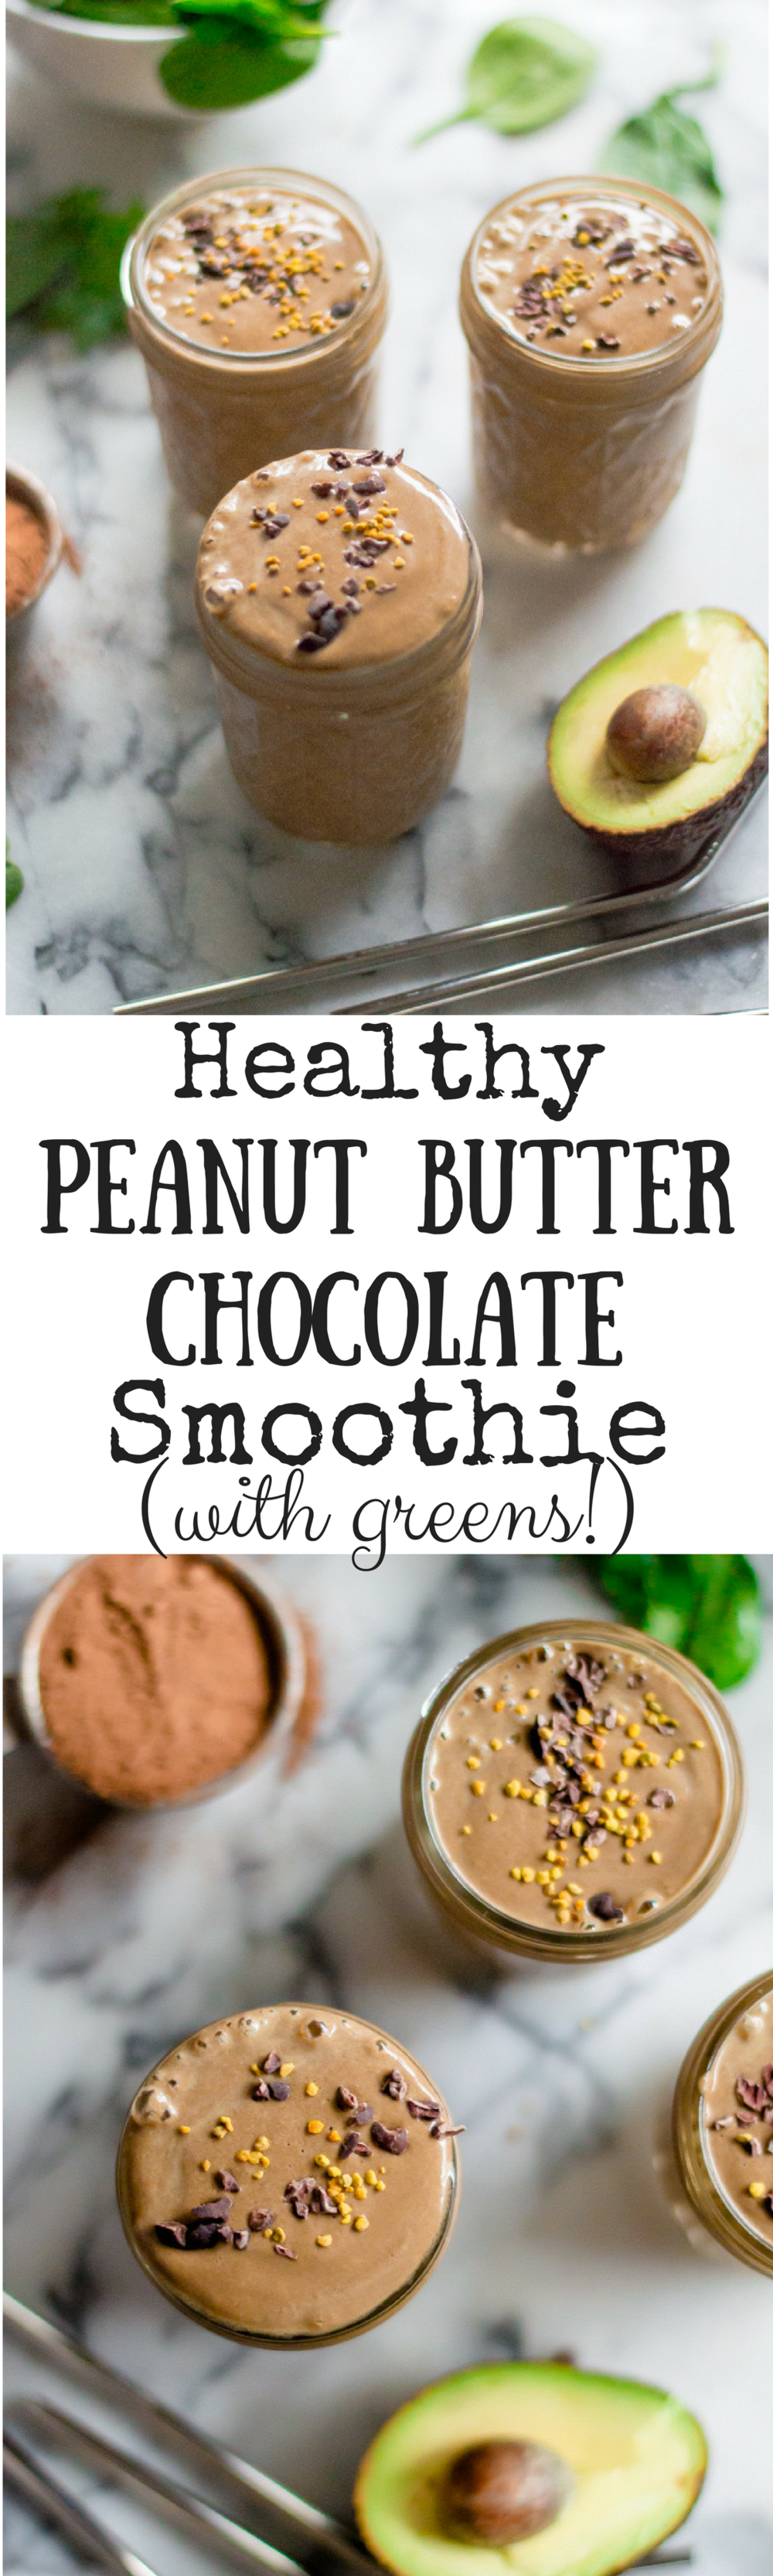 Healthy Peanut Butter Chocolate Smoothie (with greens!)